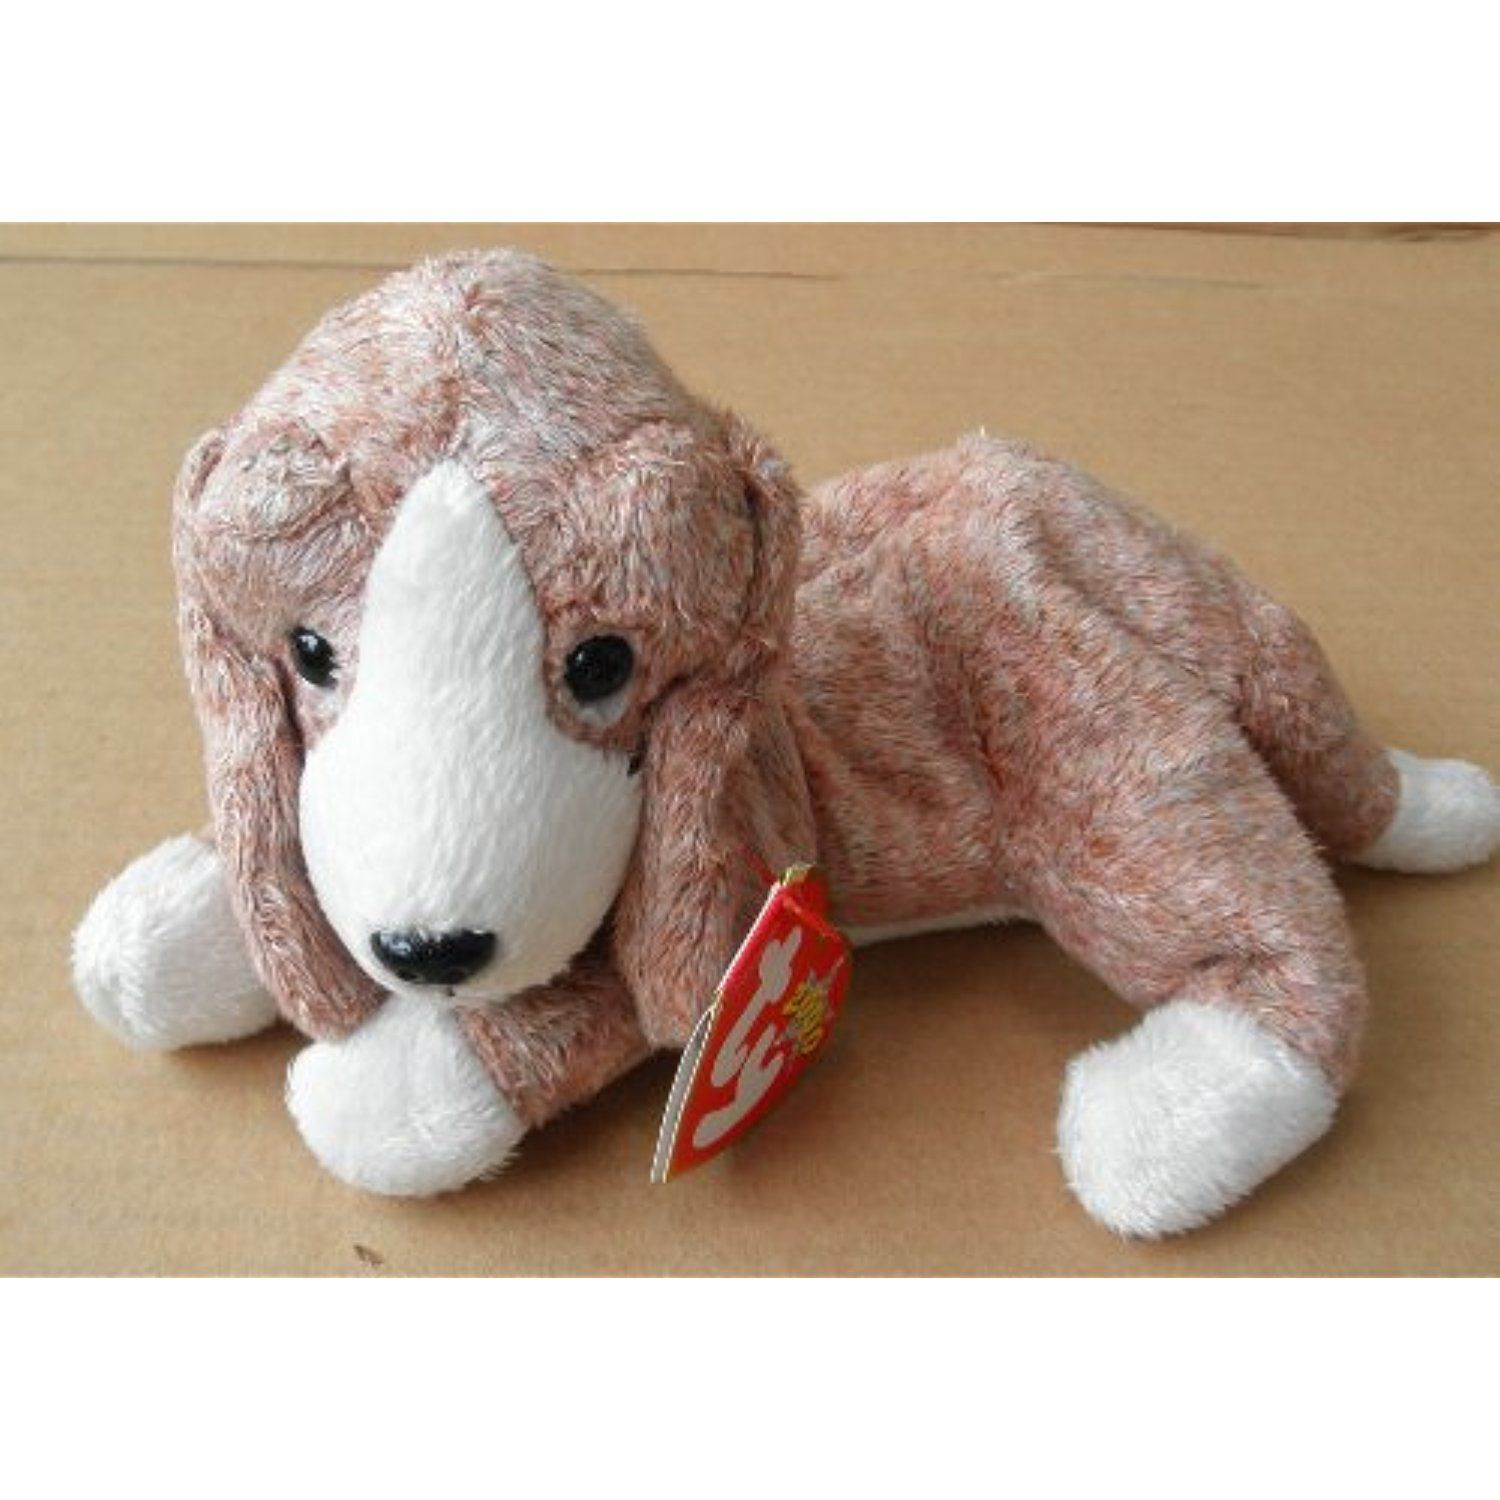 Details About Ty Beanie Baby 6 Franklin Brown Dog Plush Stuffed